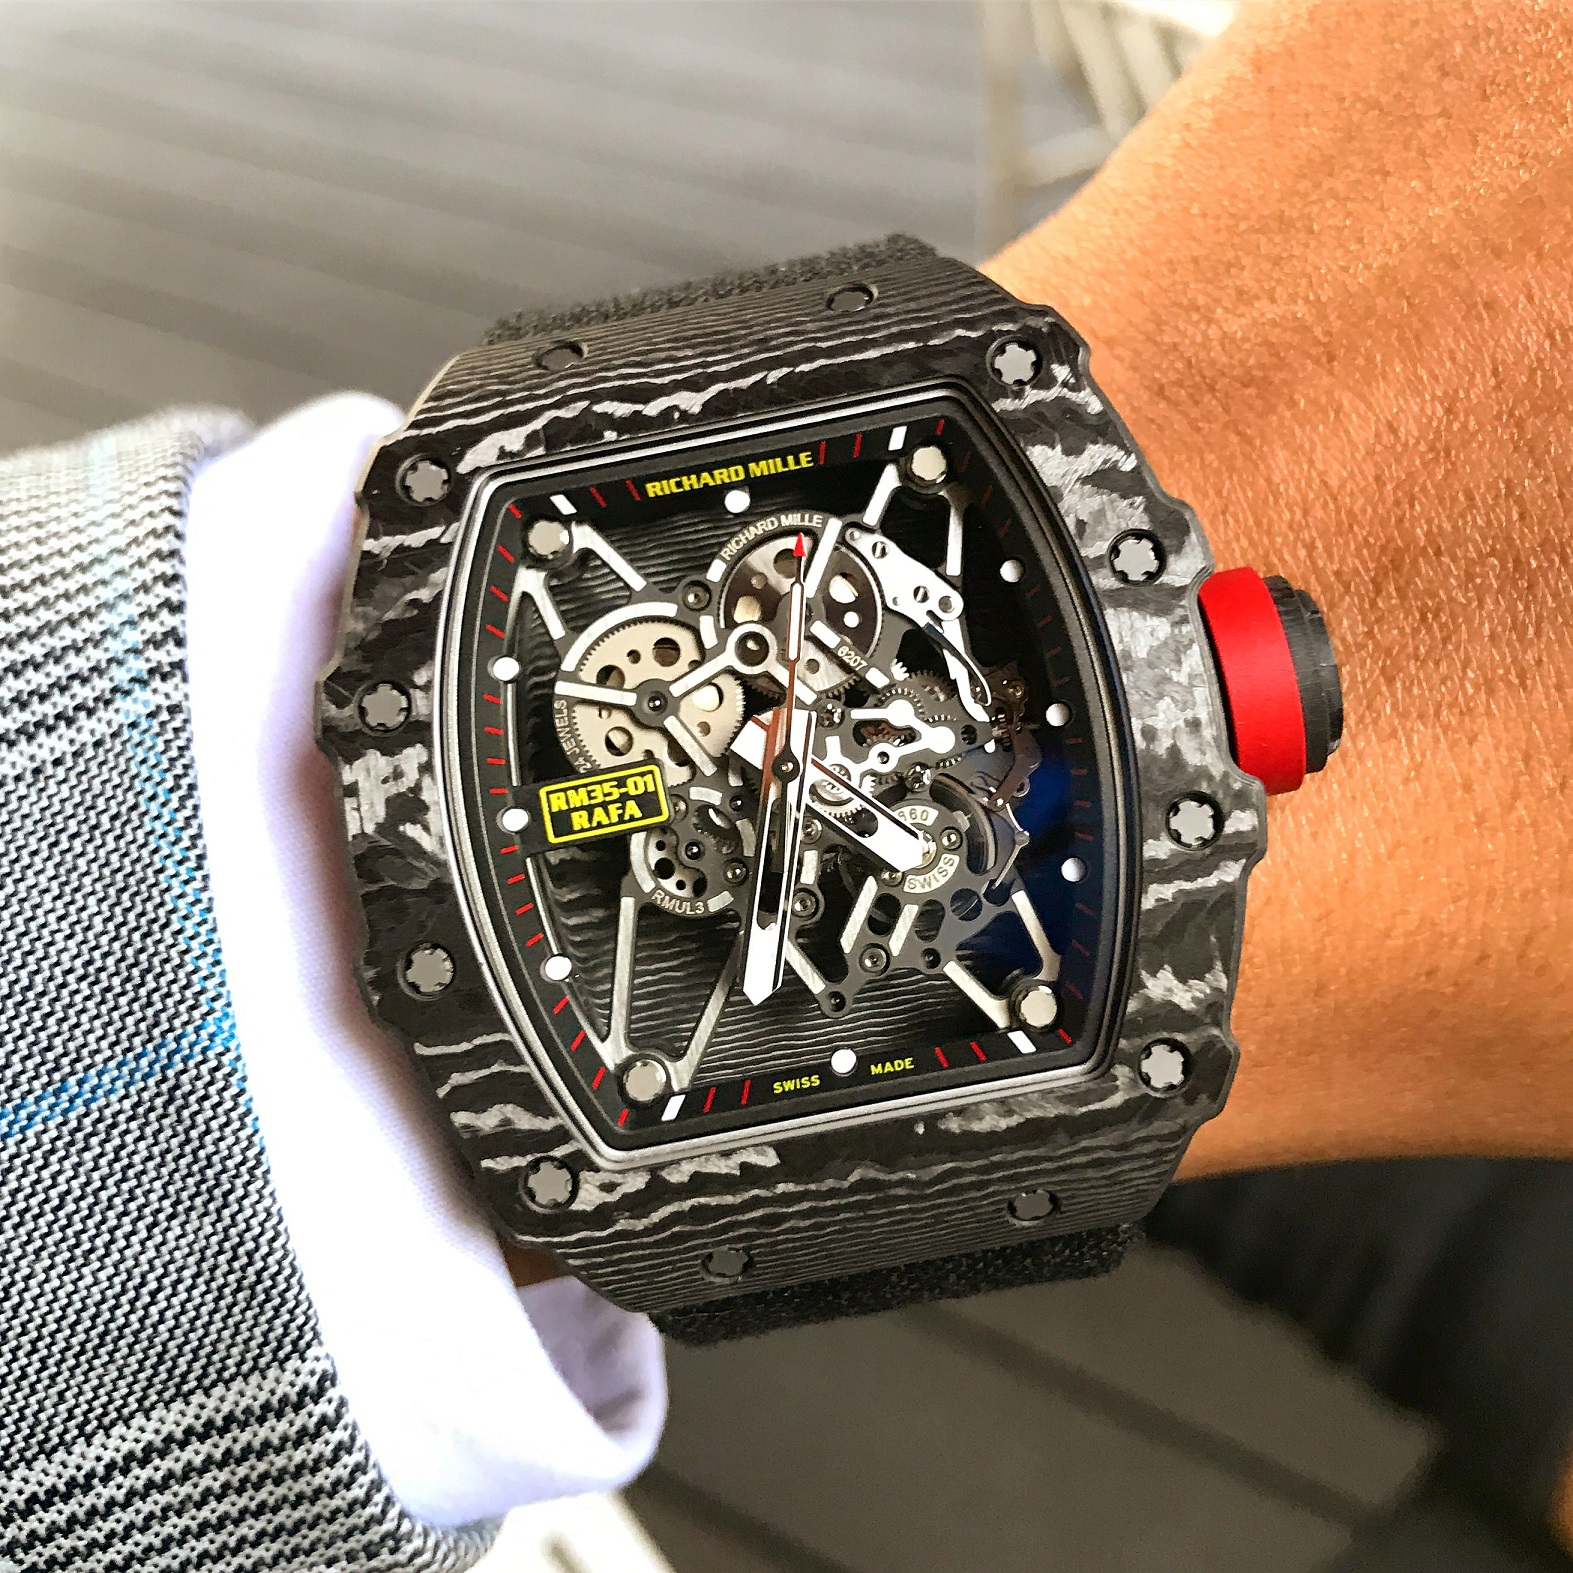 Richard Mille.RM35-01 (Watch courtesy of @DubaiWatchClub and @D_244). Photo courtesy of Wee Yong (@Horolojizz).